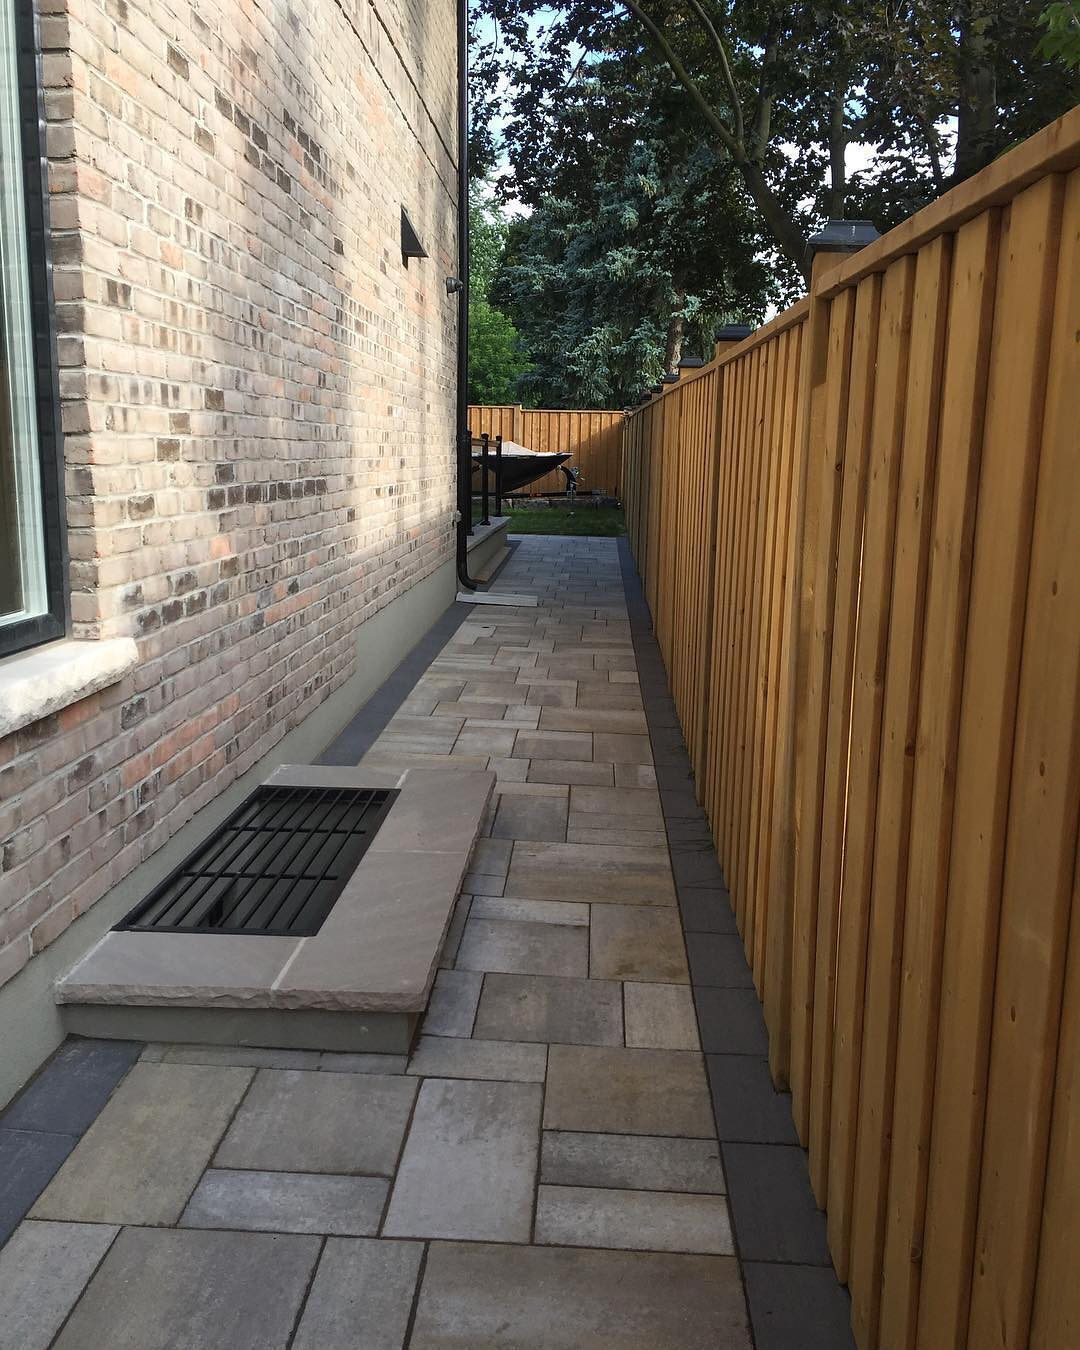 50 Stone Walkway Ideas for Homes and Gardens,walkway ideas on a budget,walkway ideas for front of house,simple front walkway ideas,front entry walkway ideas